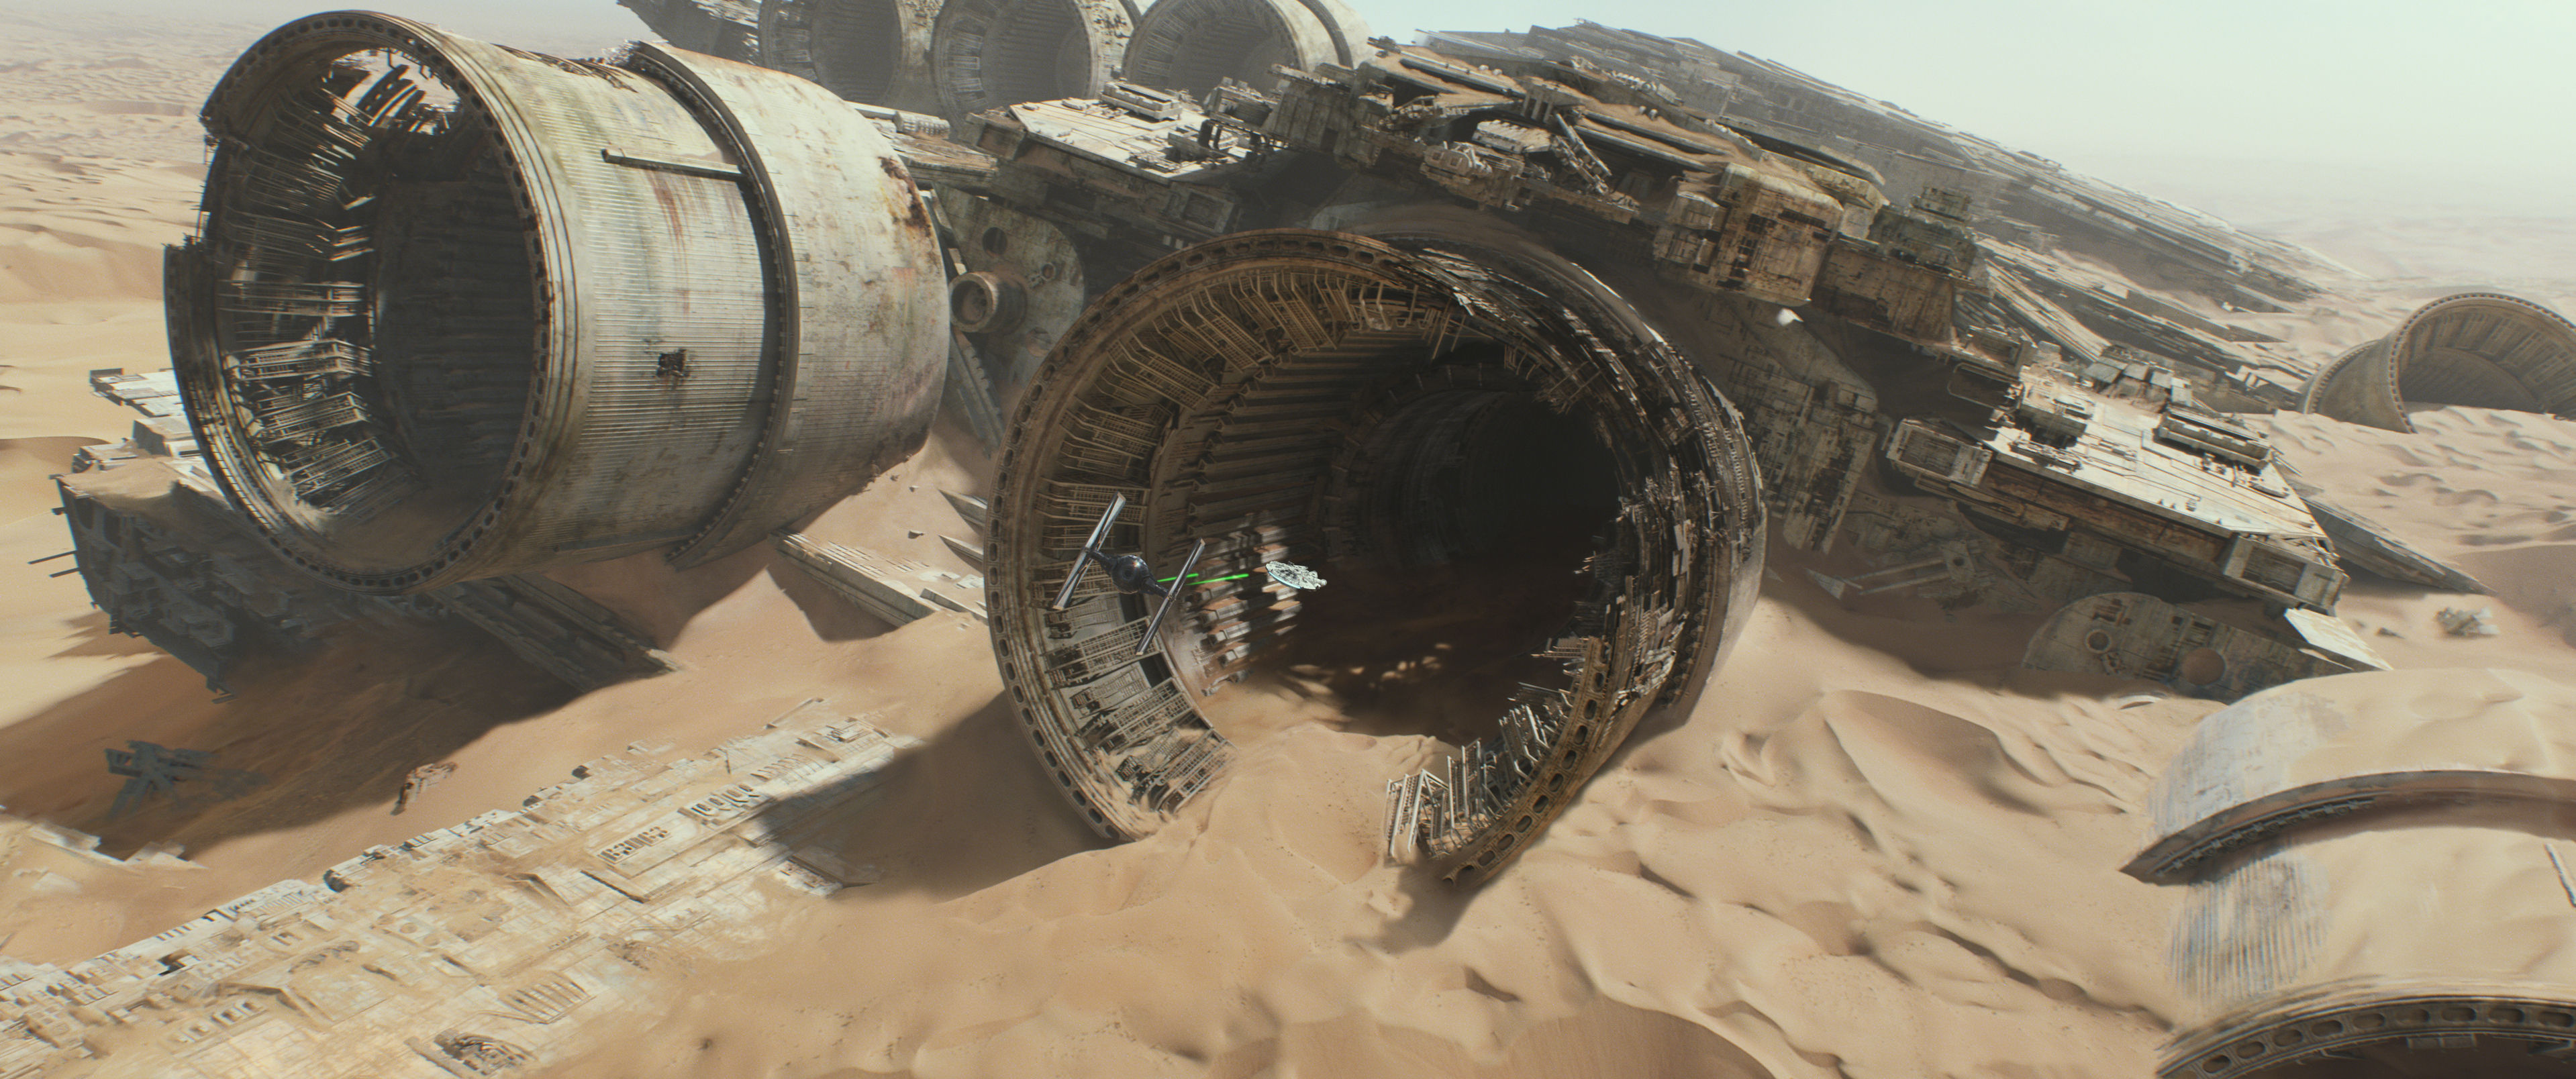 Star Wars The Force Awakens Fanboy Review The Best Since Empire Strikes Back Popular Science